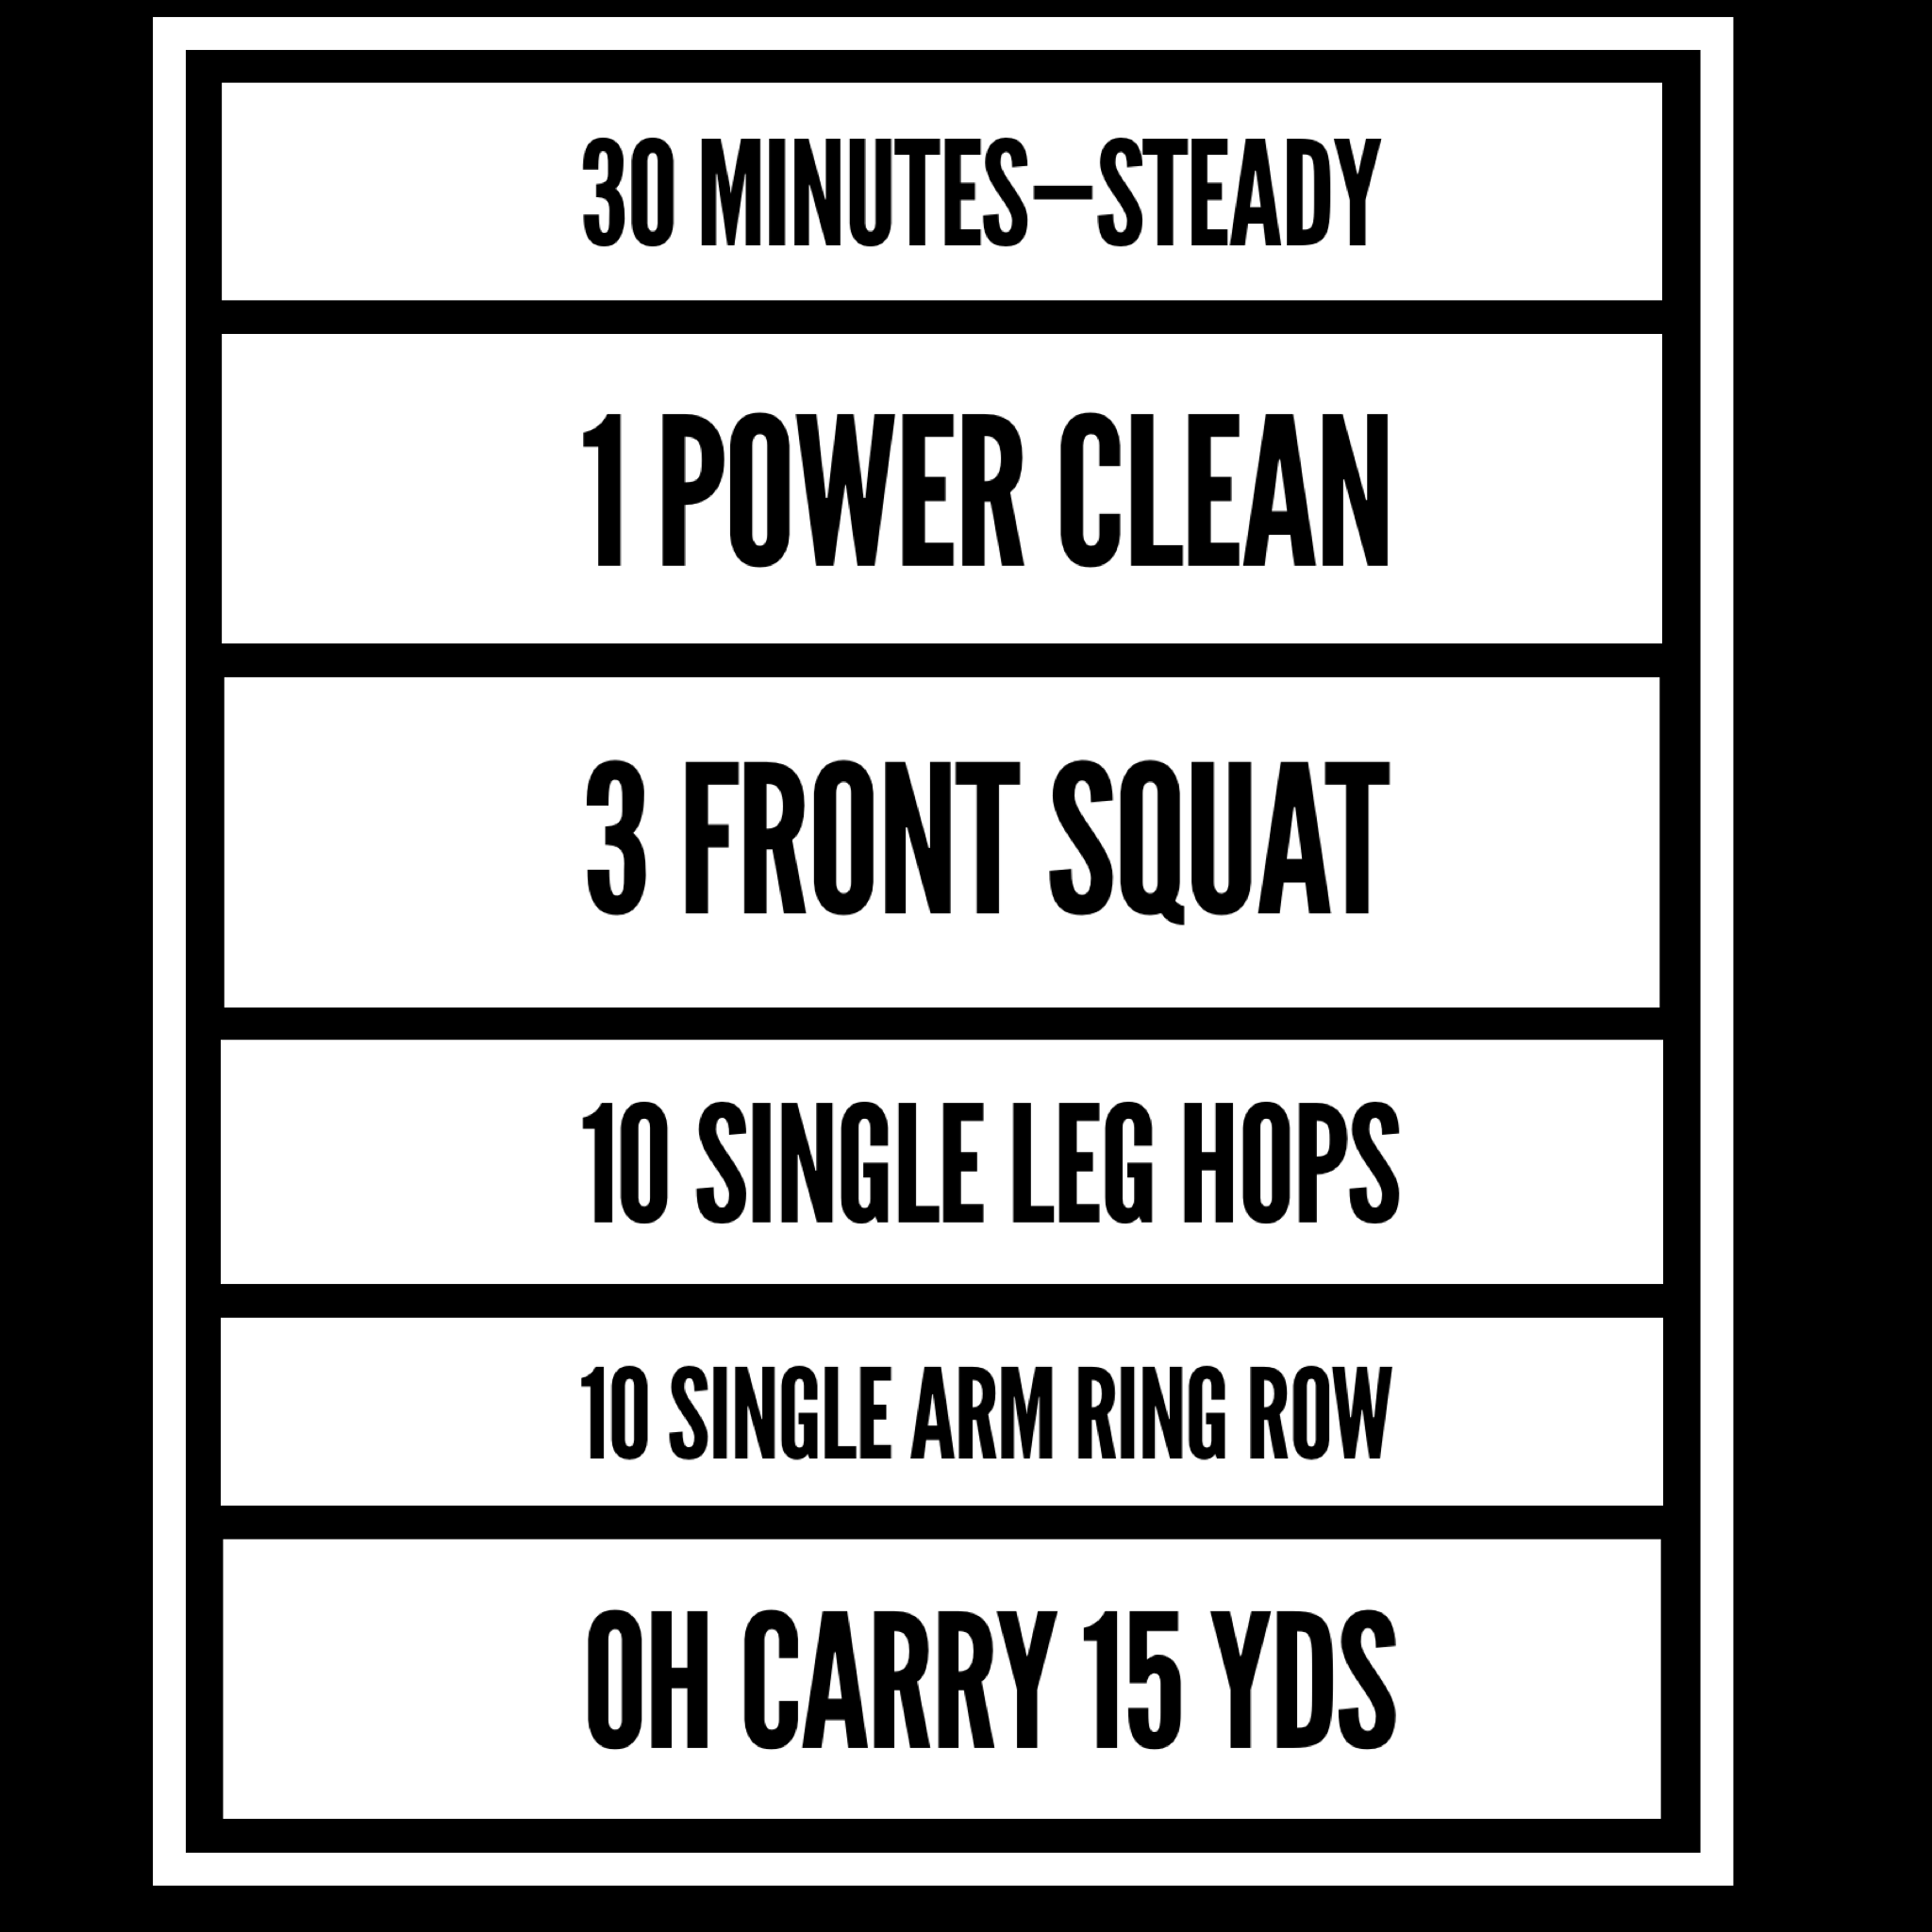 there are 2 goals for this workout::  1- steady pace throughout, heavy breathing while able to hold conversation.    2- when it's time to pick up the bar, you do not hesitate.    Power Clean - 65-75% ish  Front Squat - same bar  Single leg hops are up to a 45# plate for everyone, and it is 10 each leg. Scale down to a 25# plate or even just forward and back over a crack on the floor.    Single Arm Ring Row - mark your spot on the floor with a plate ... Rx is with feet directly underneath the rings, scale back from there for consistency.    OH Carry - 55/35 dumbbell or kB,  15 yds down with one arm, 15 yds back with other arm.